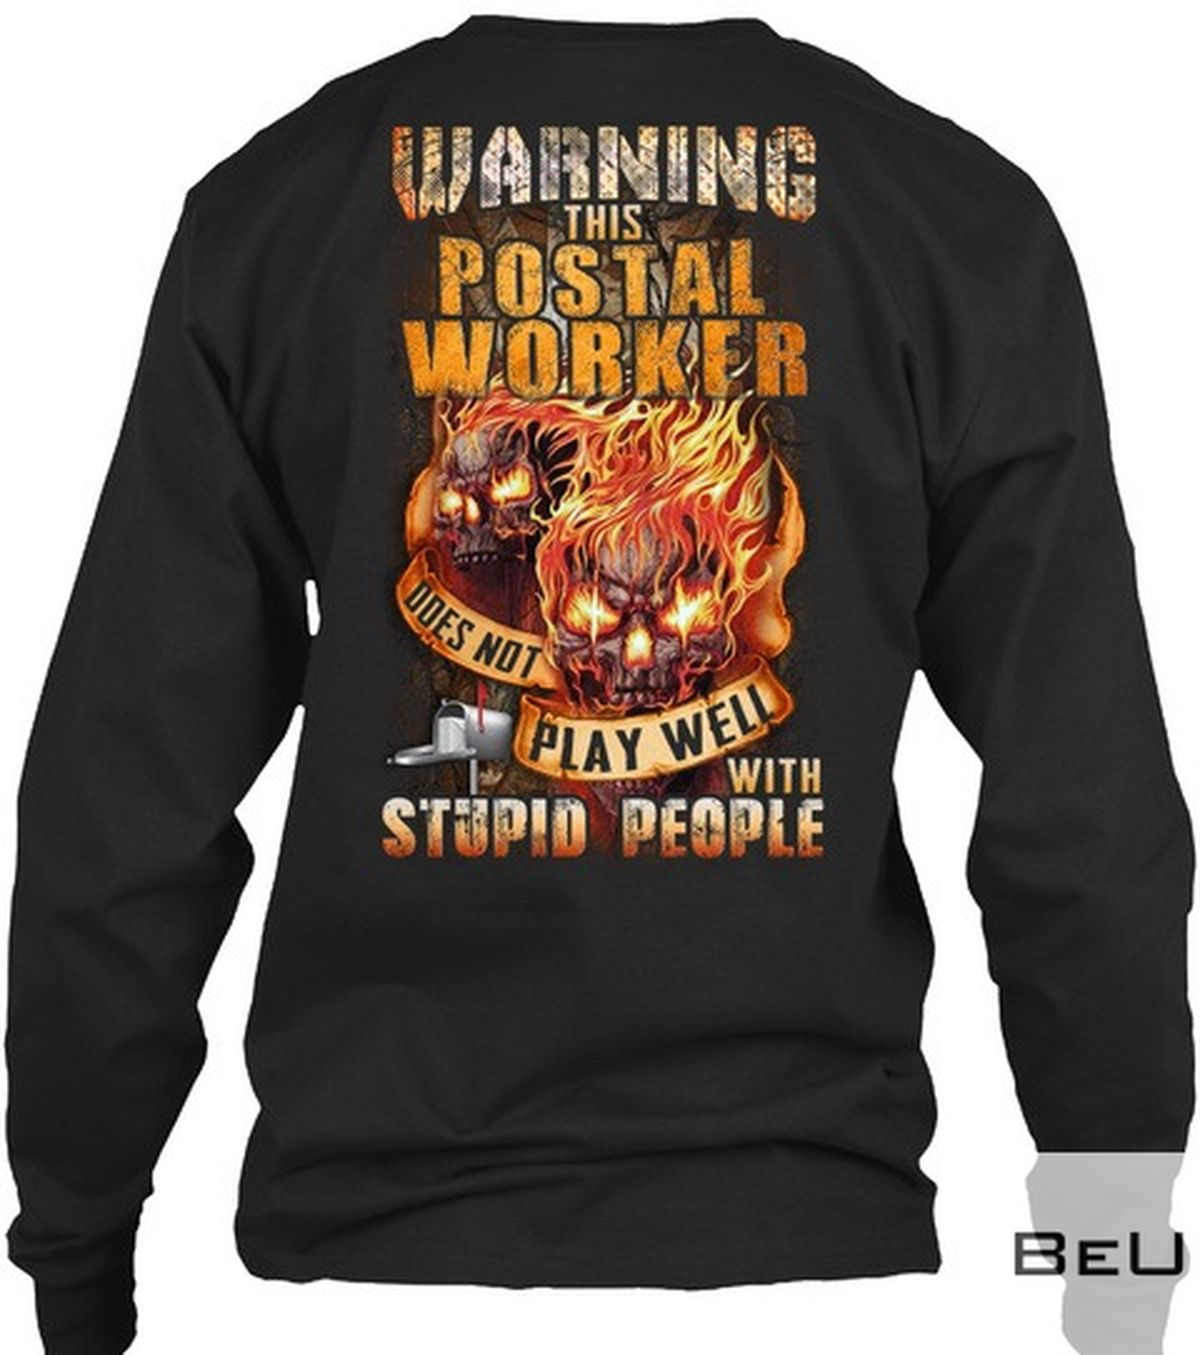 Warning this postal worker does not play well with stupid people shirtx